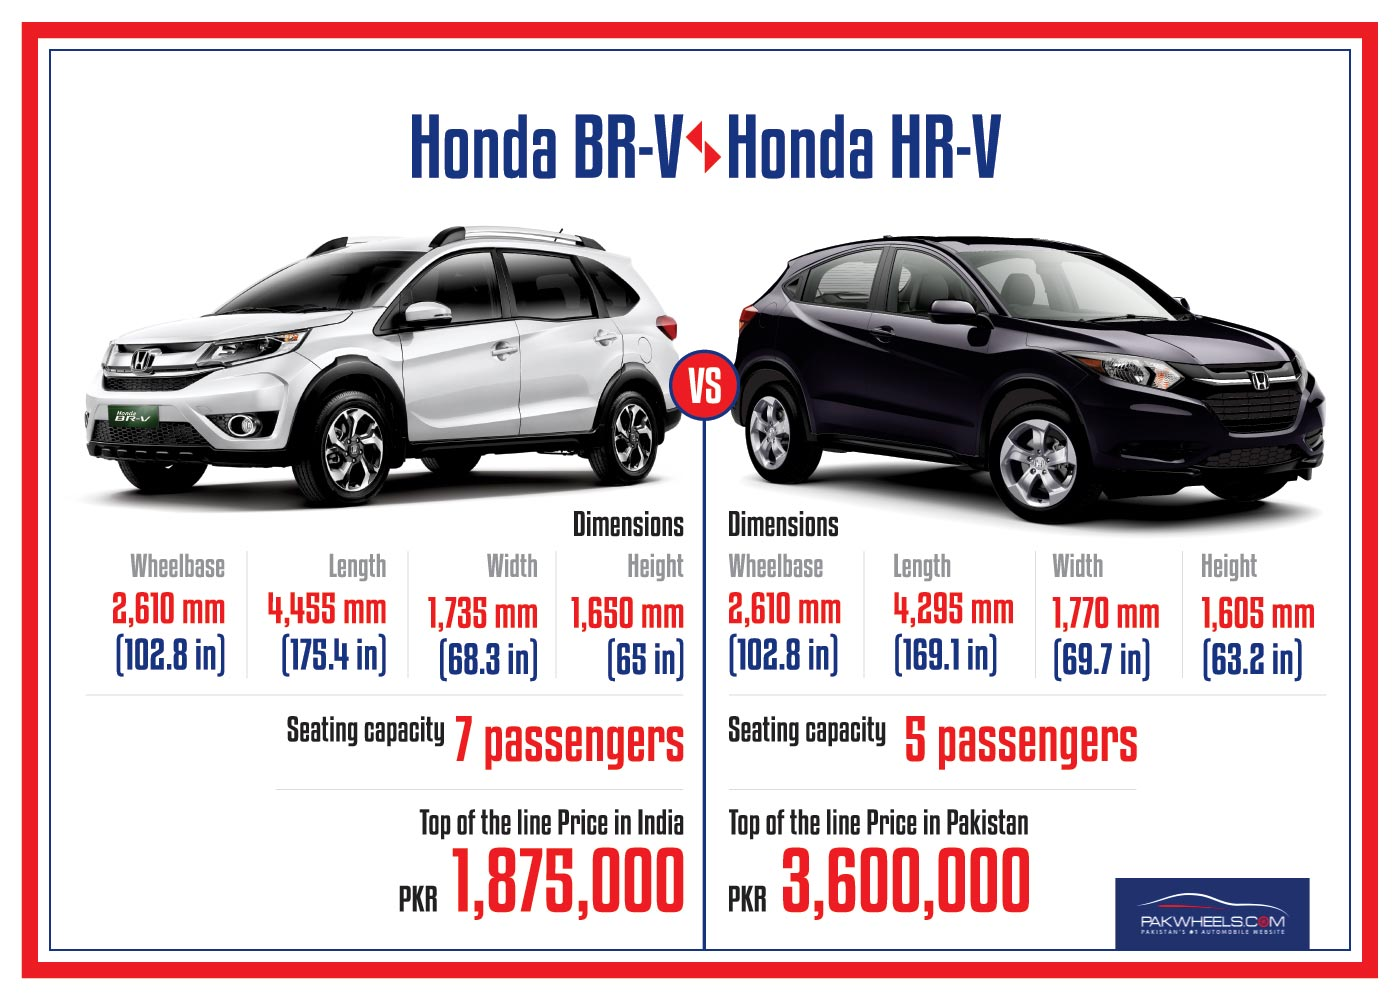 Honda Br V Would Have Been A Better Option Than Hr V In Pakistan